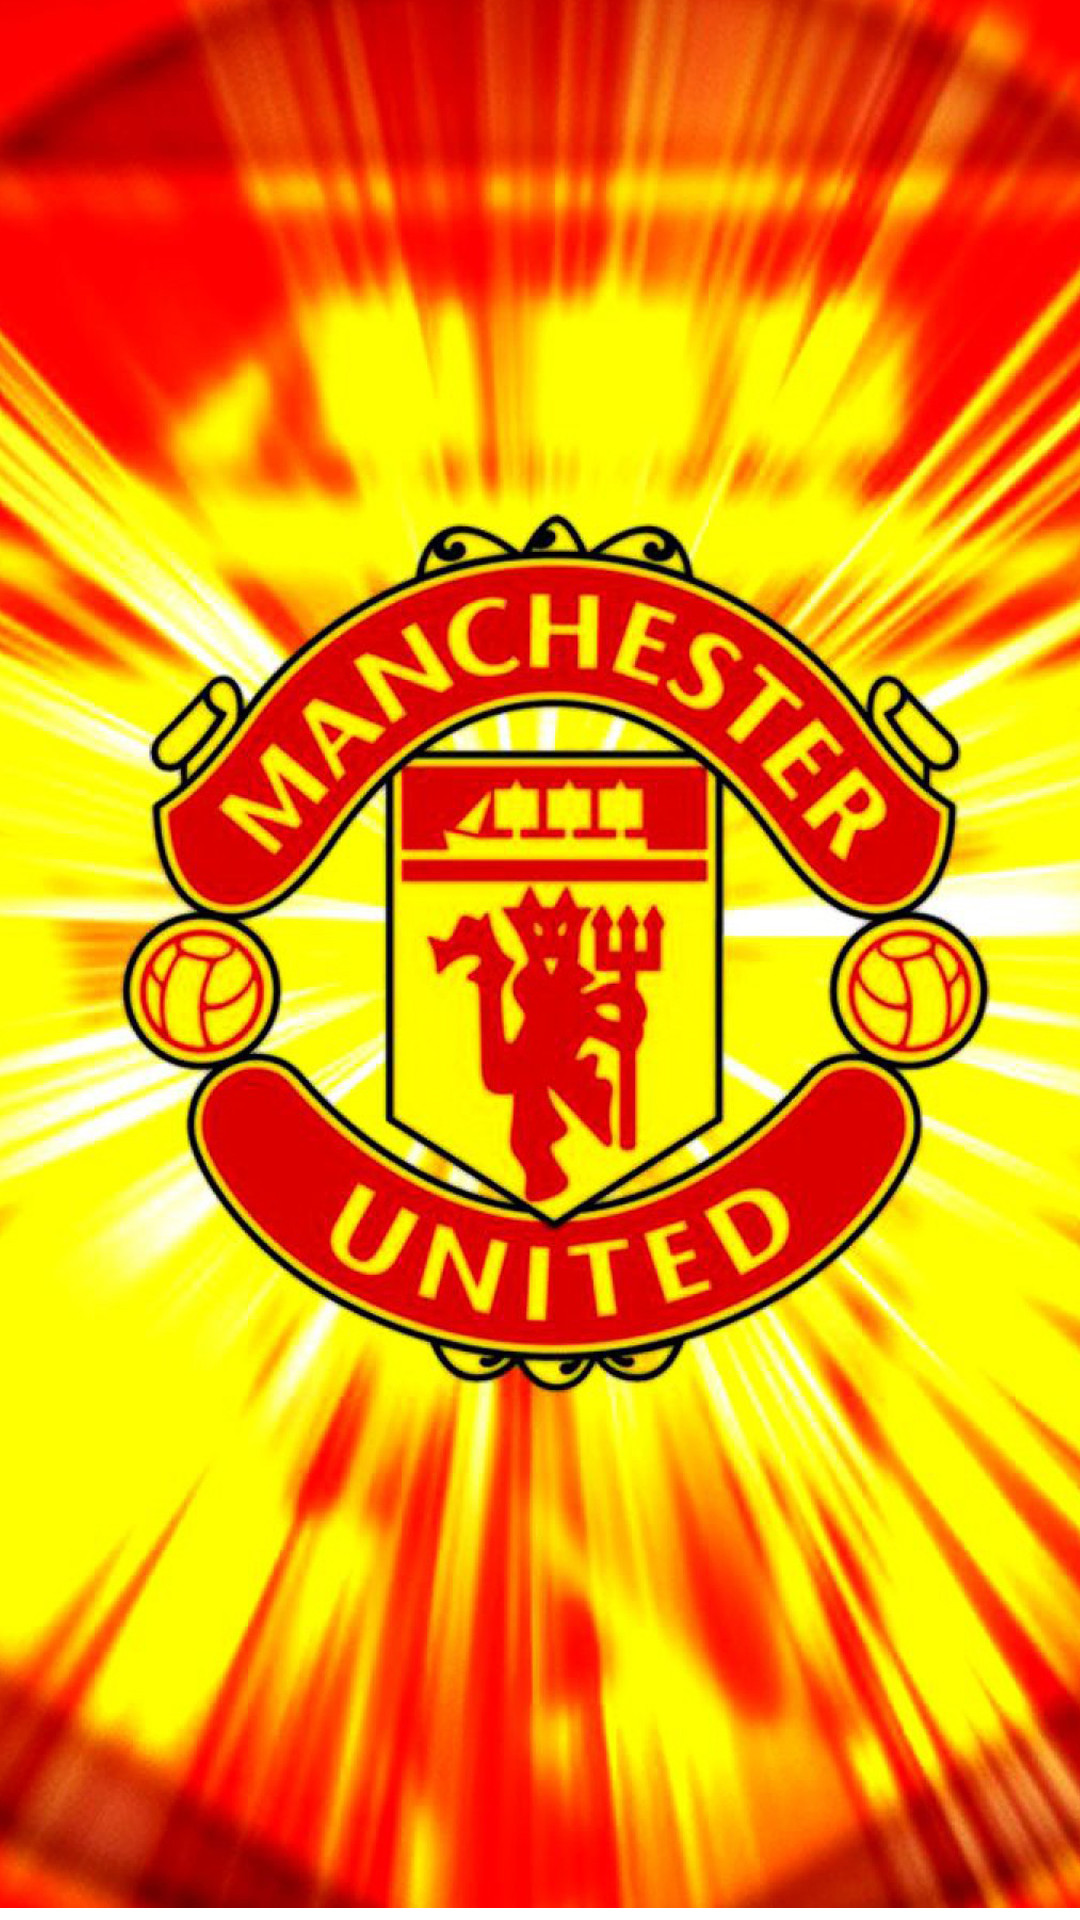 Manchester United Wallpaper HD (68+ images)